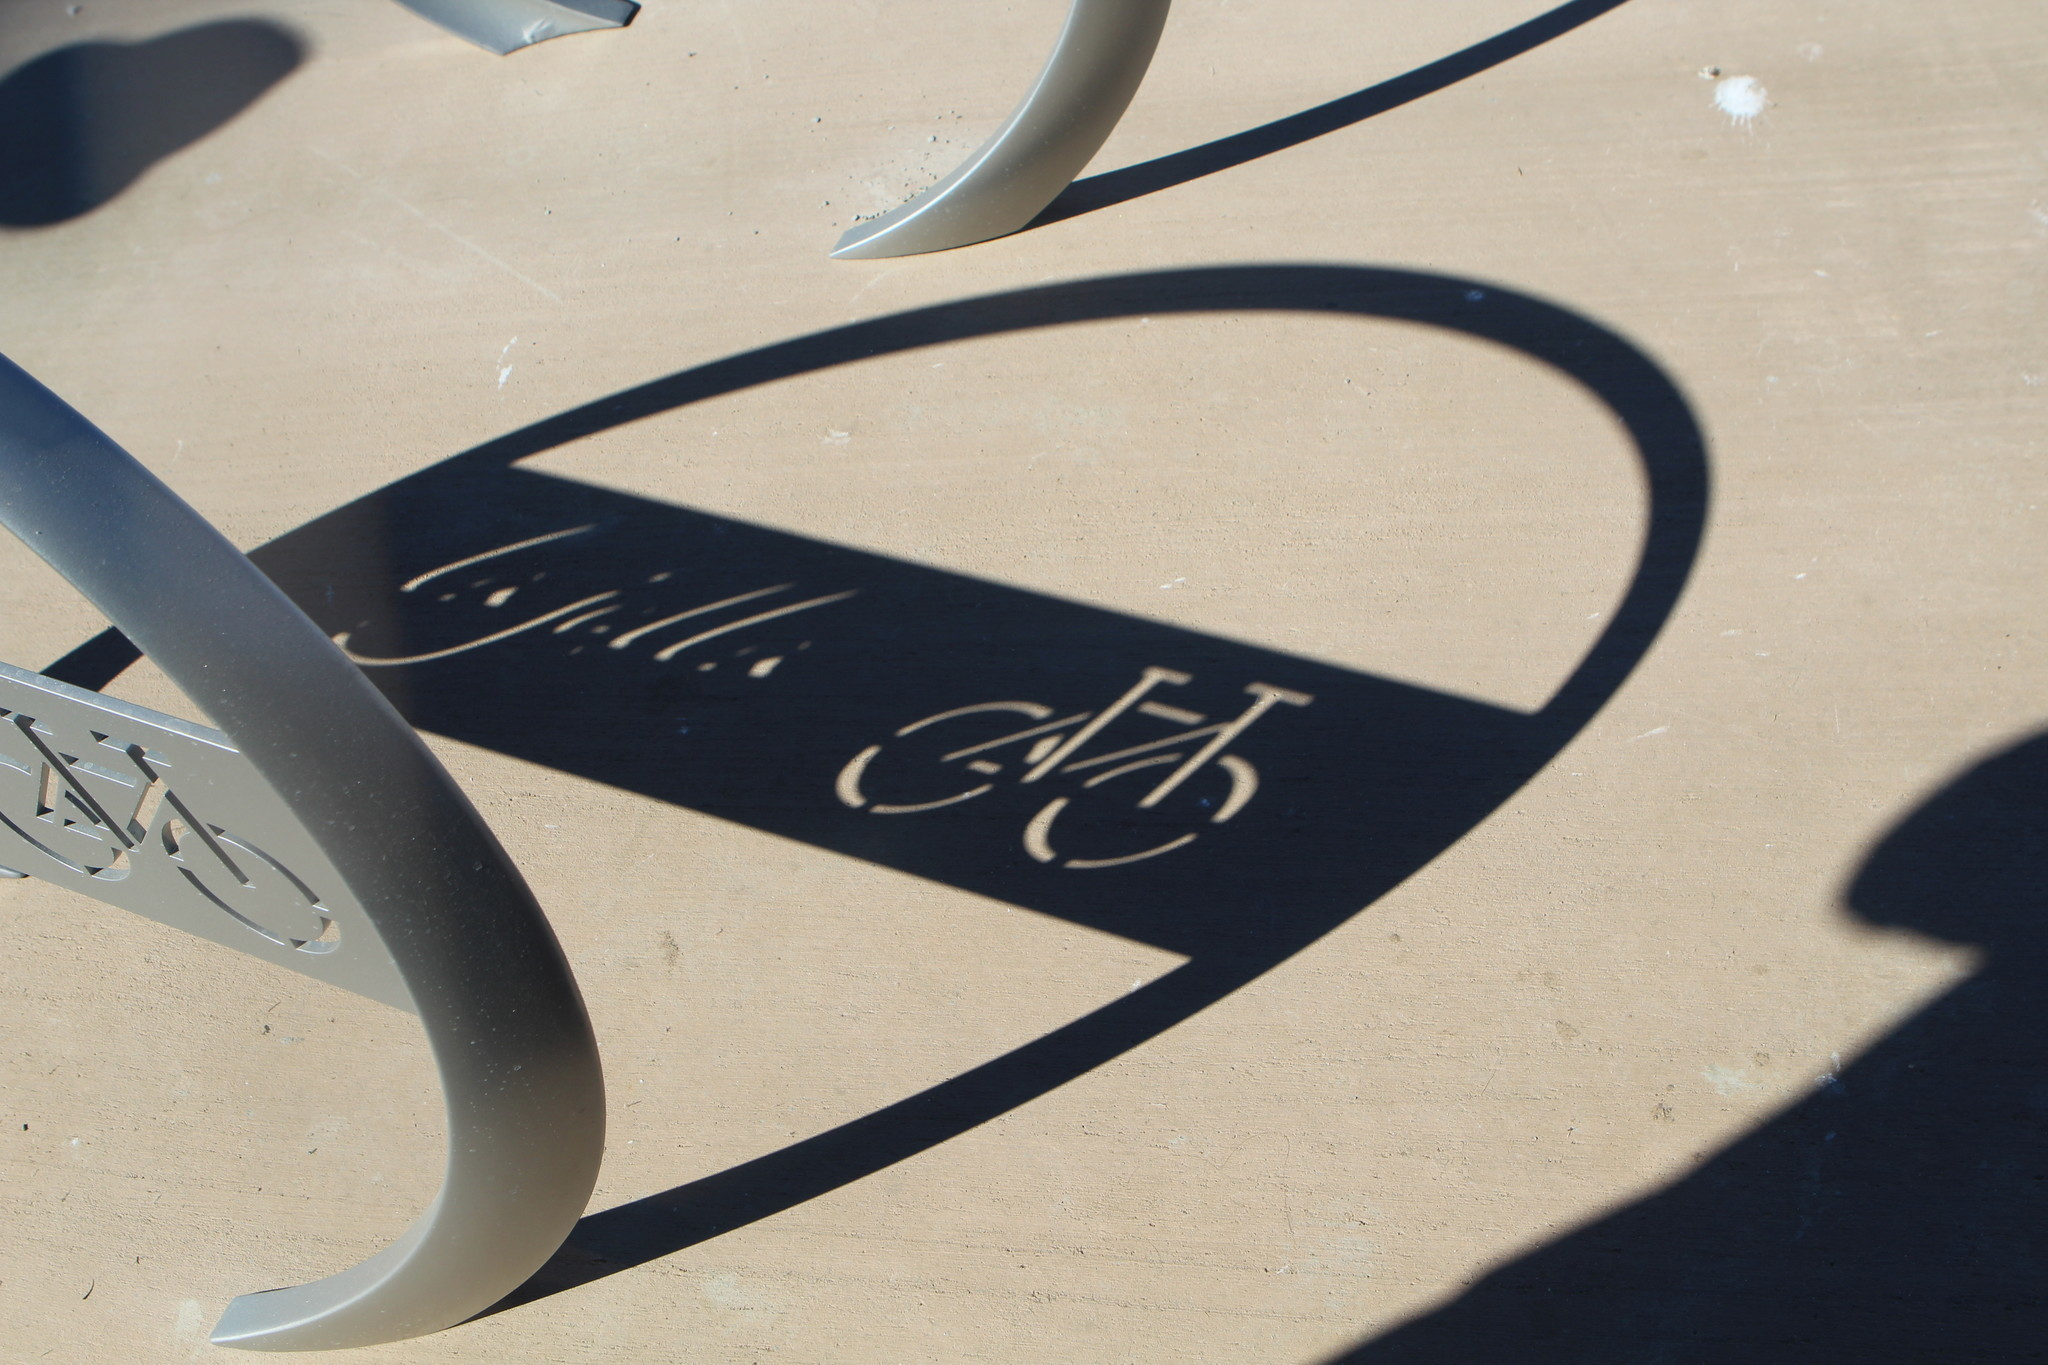 Each bike rack consists of five grey partial circles of metal embedded into concrete.